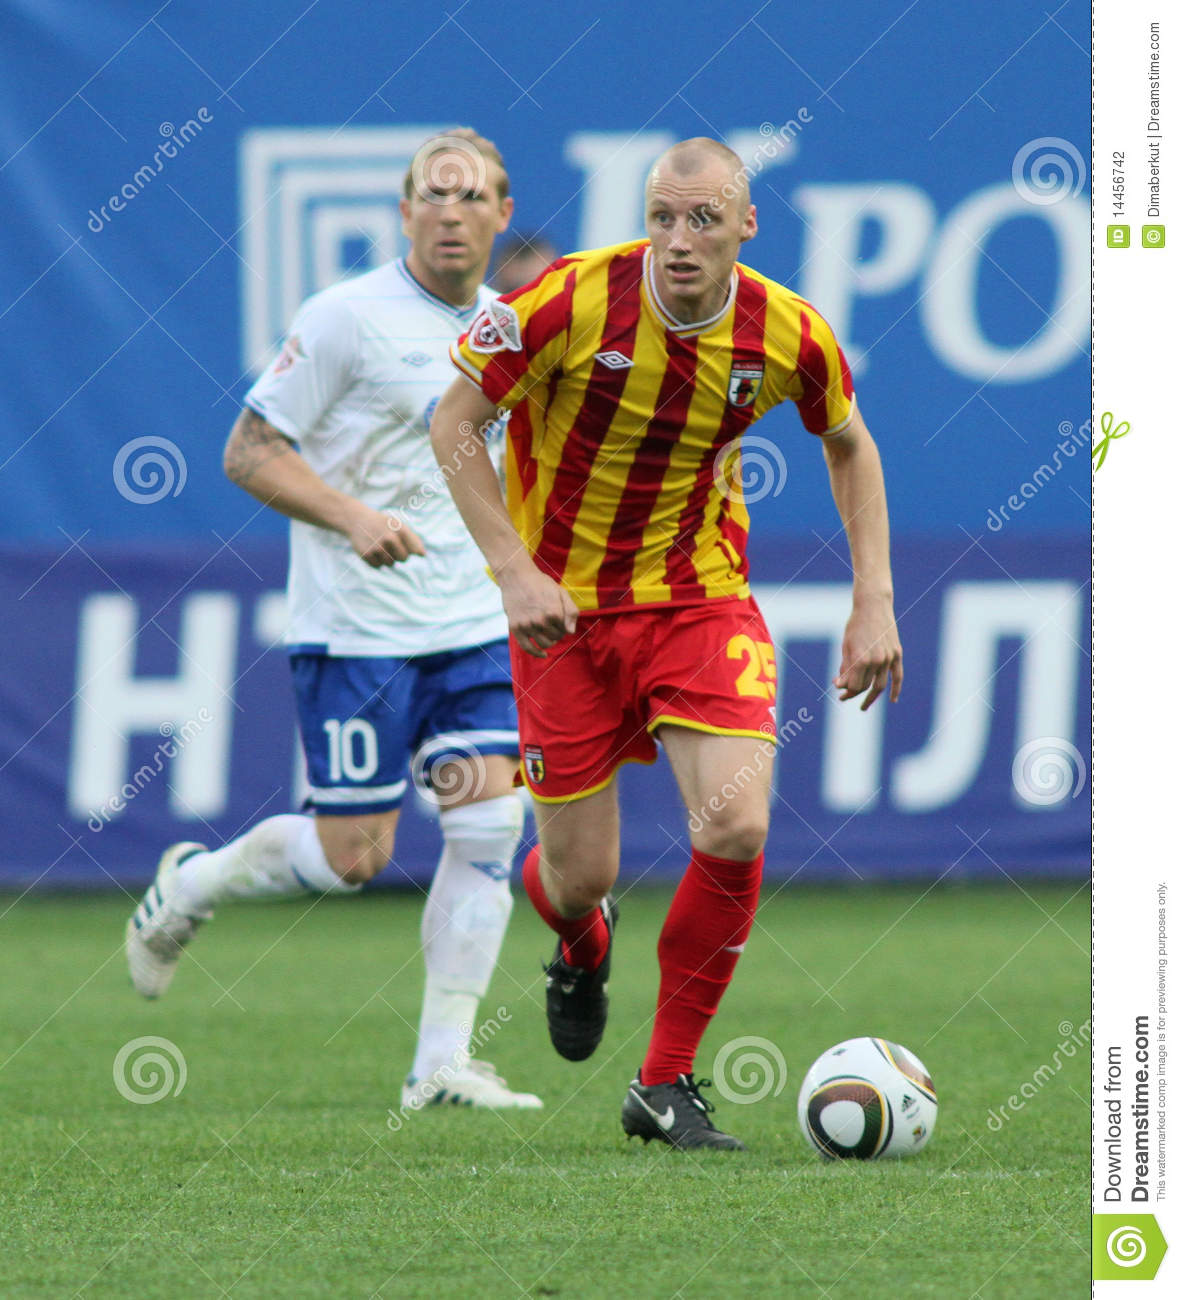 In a game of the 11th round of russian football premier league